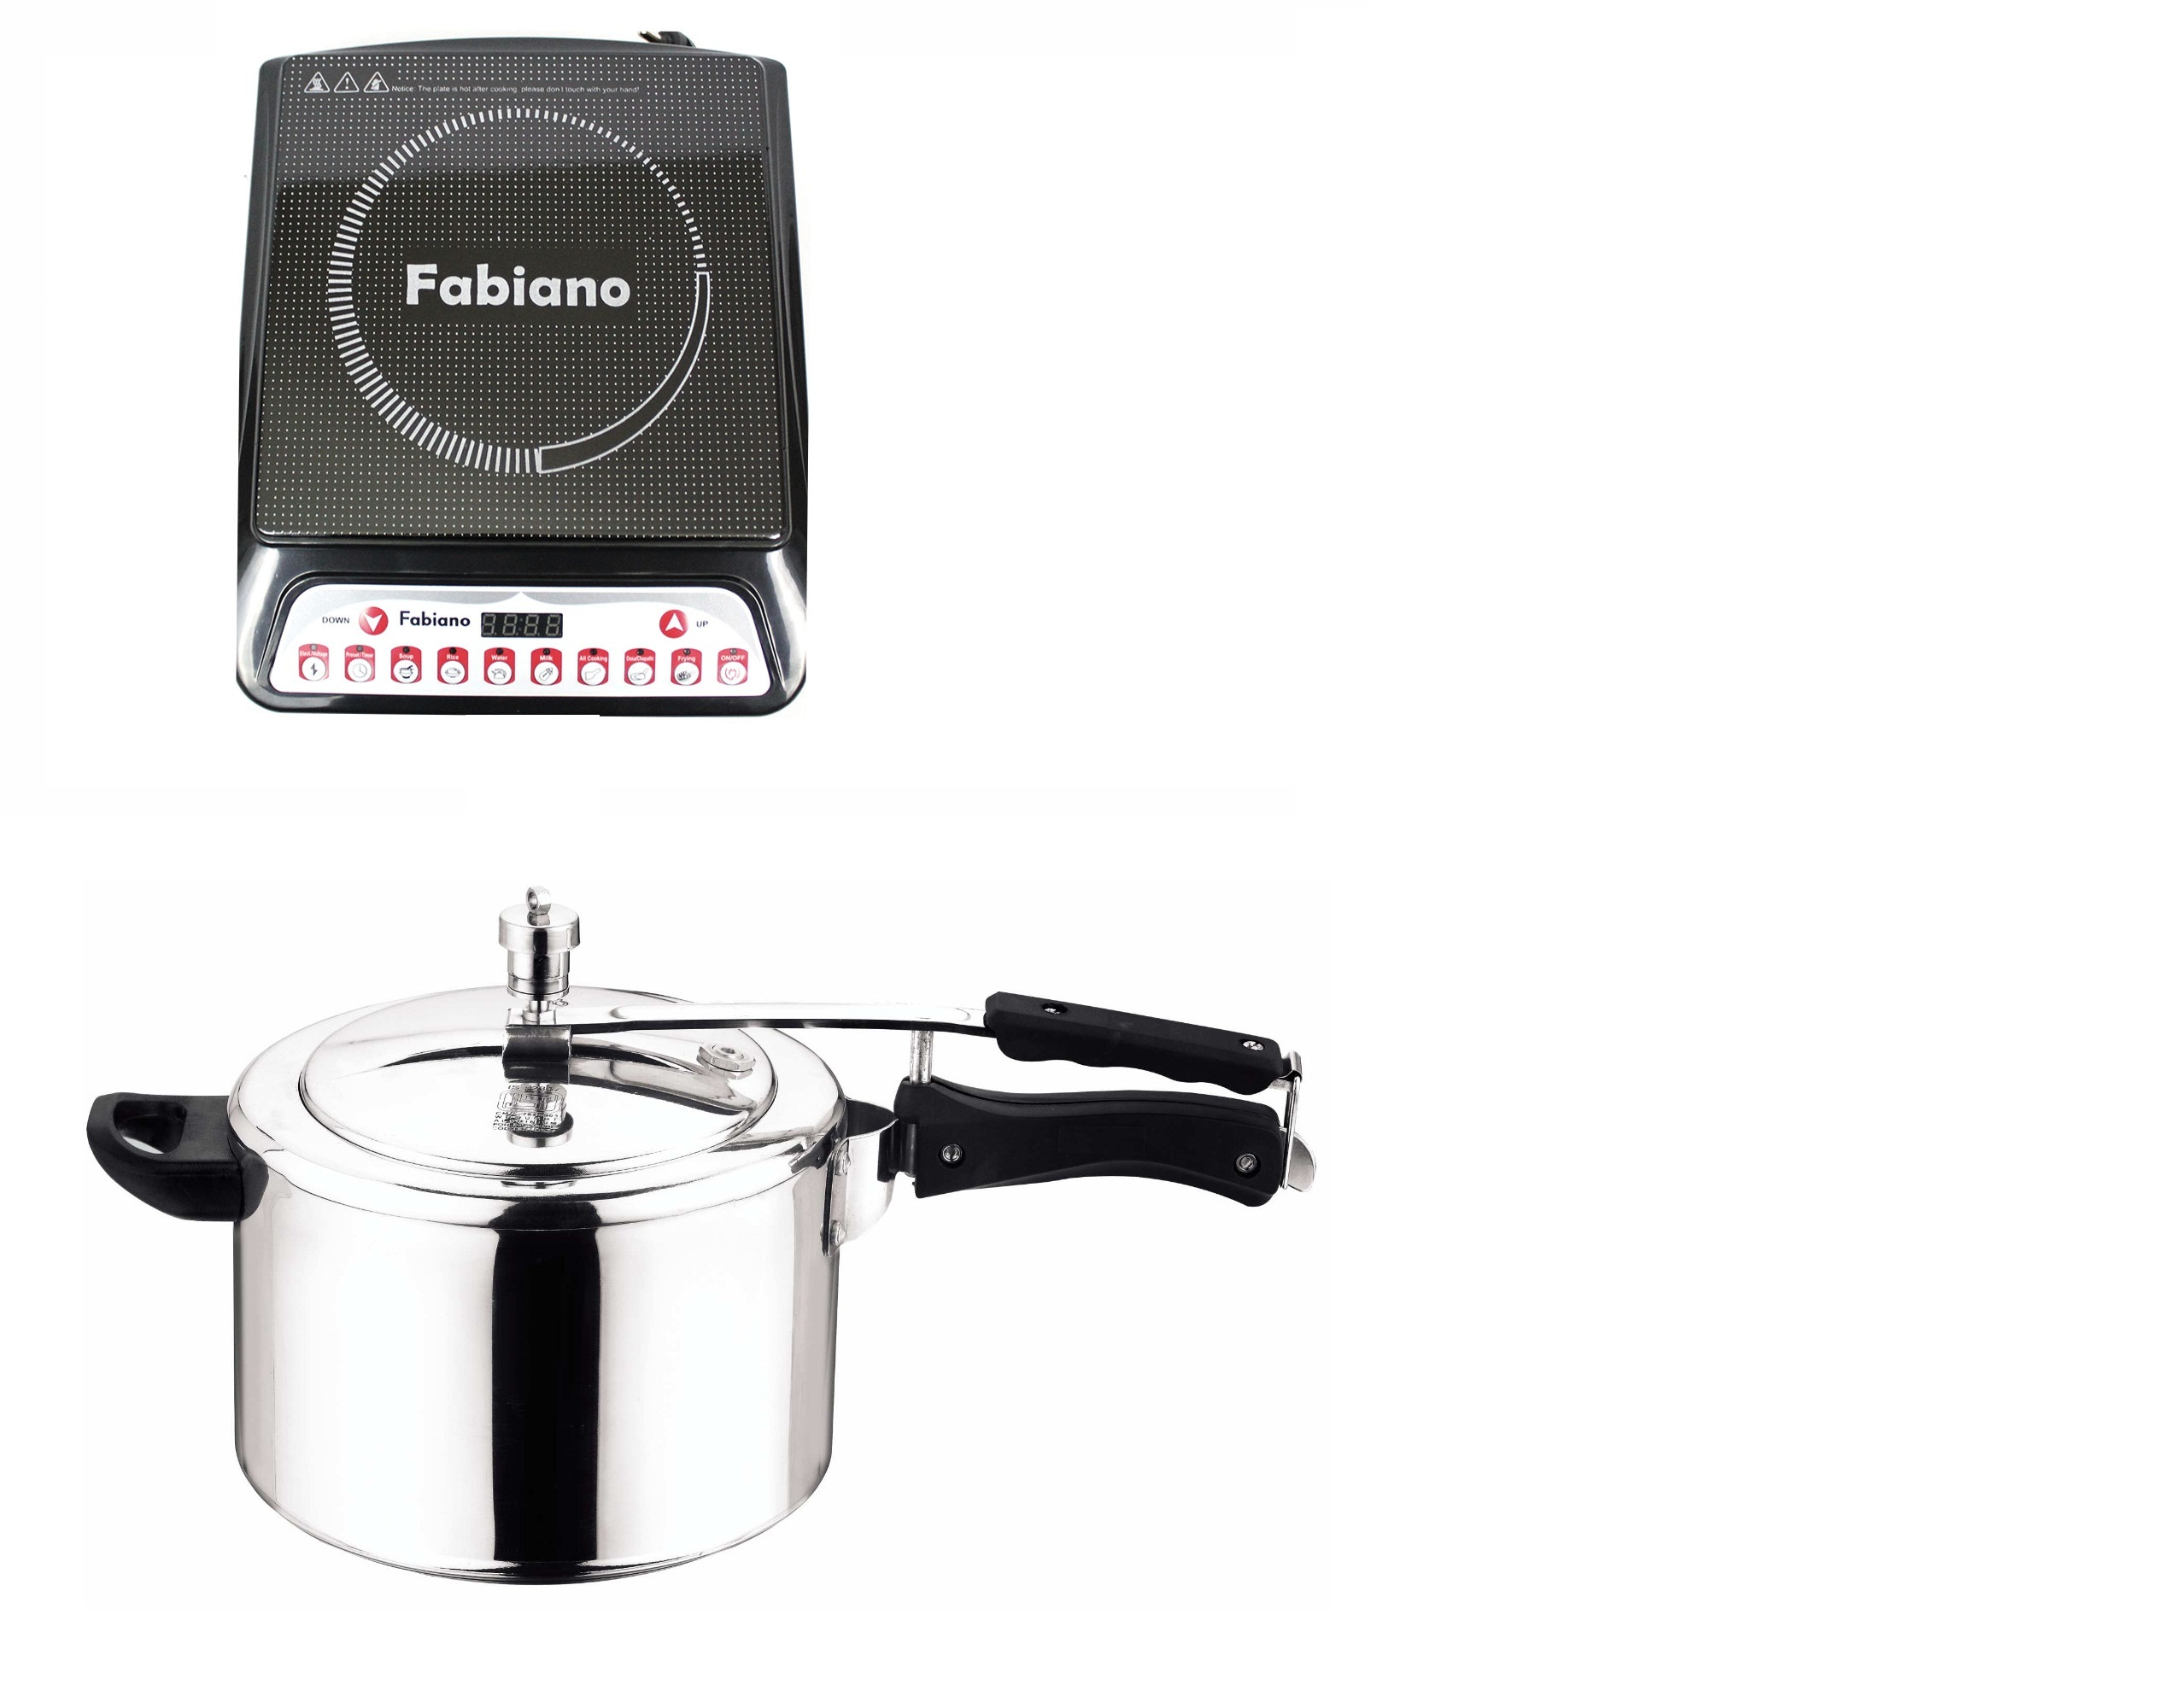 Fabiano Kitchen Classic Combo Induction Cooktop with Induction Base Inner Lid 5ltr. Pressure Cooker at shopclues